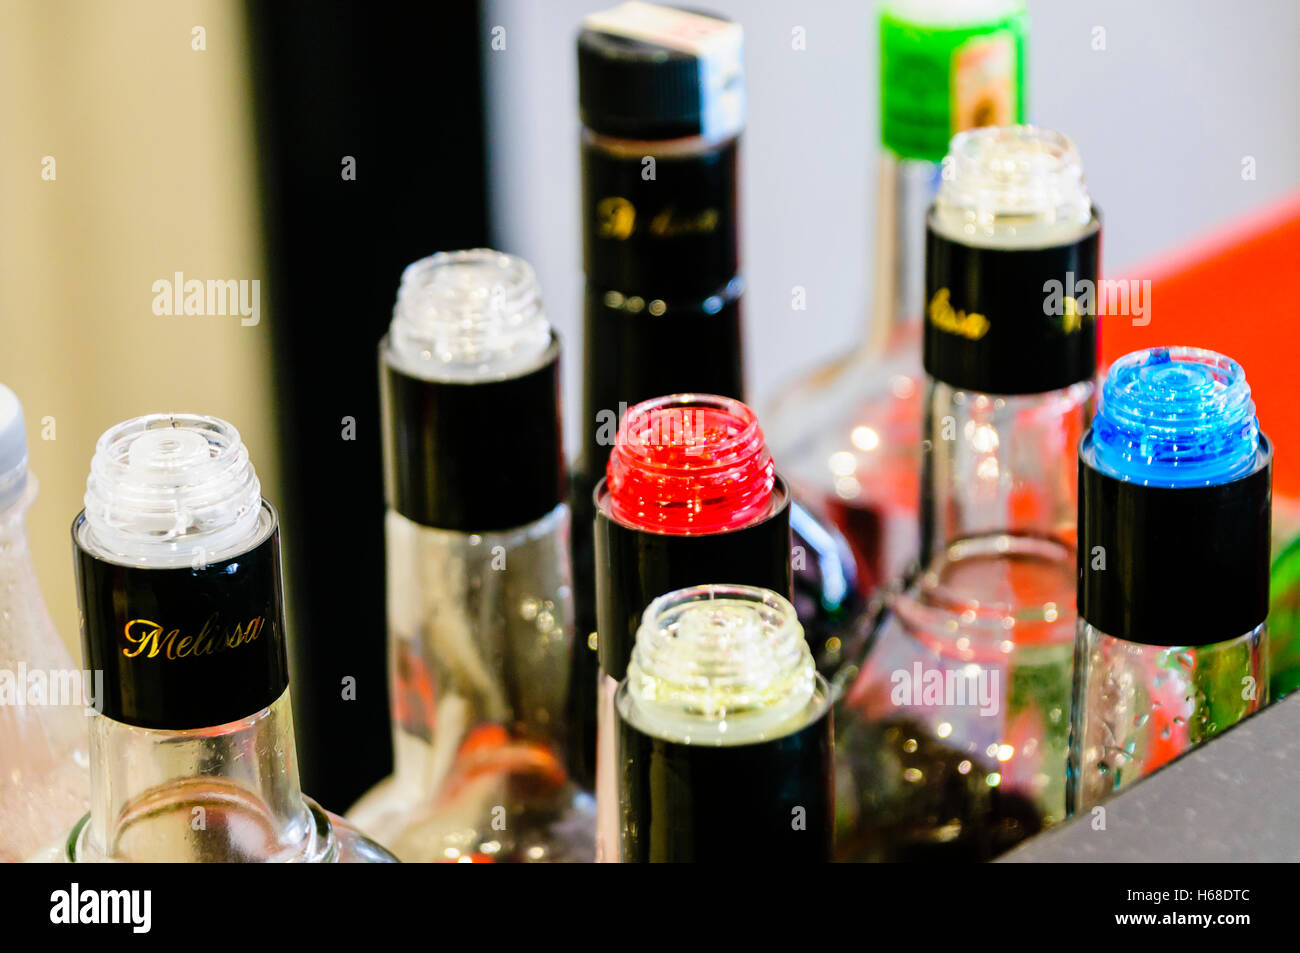 Multicoloured bottles on the counter of a bar with plastic flow restrictors/speed pourers to ensure accurate pouring - Stock Image